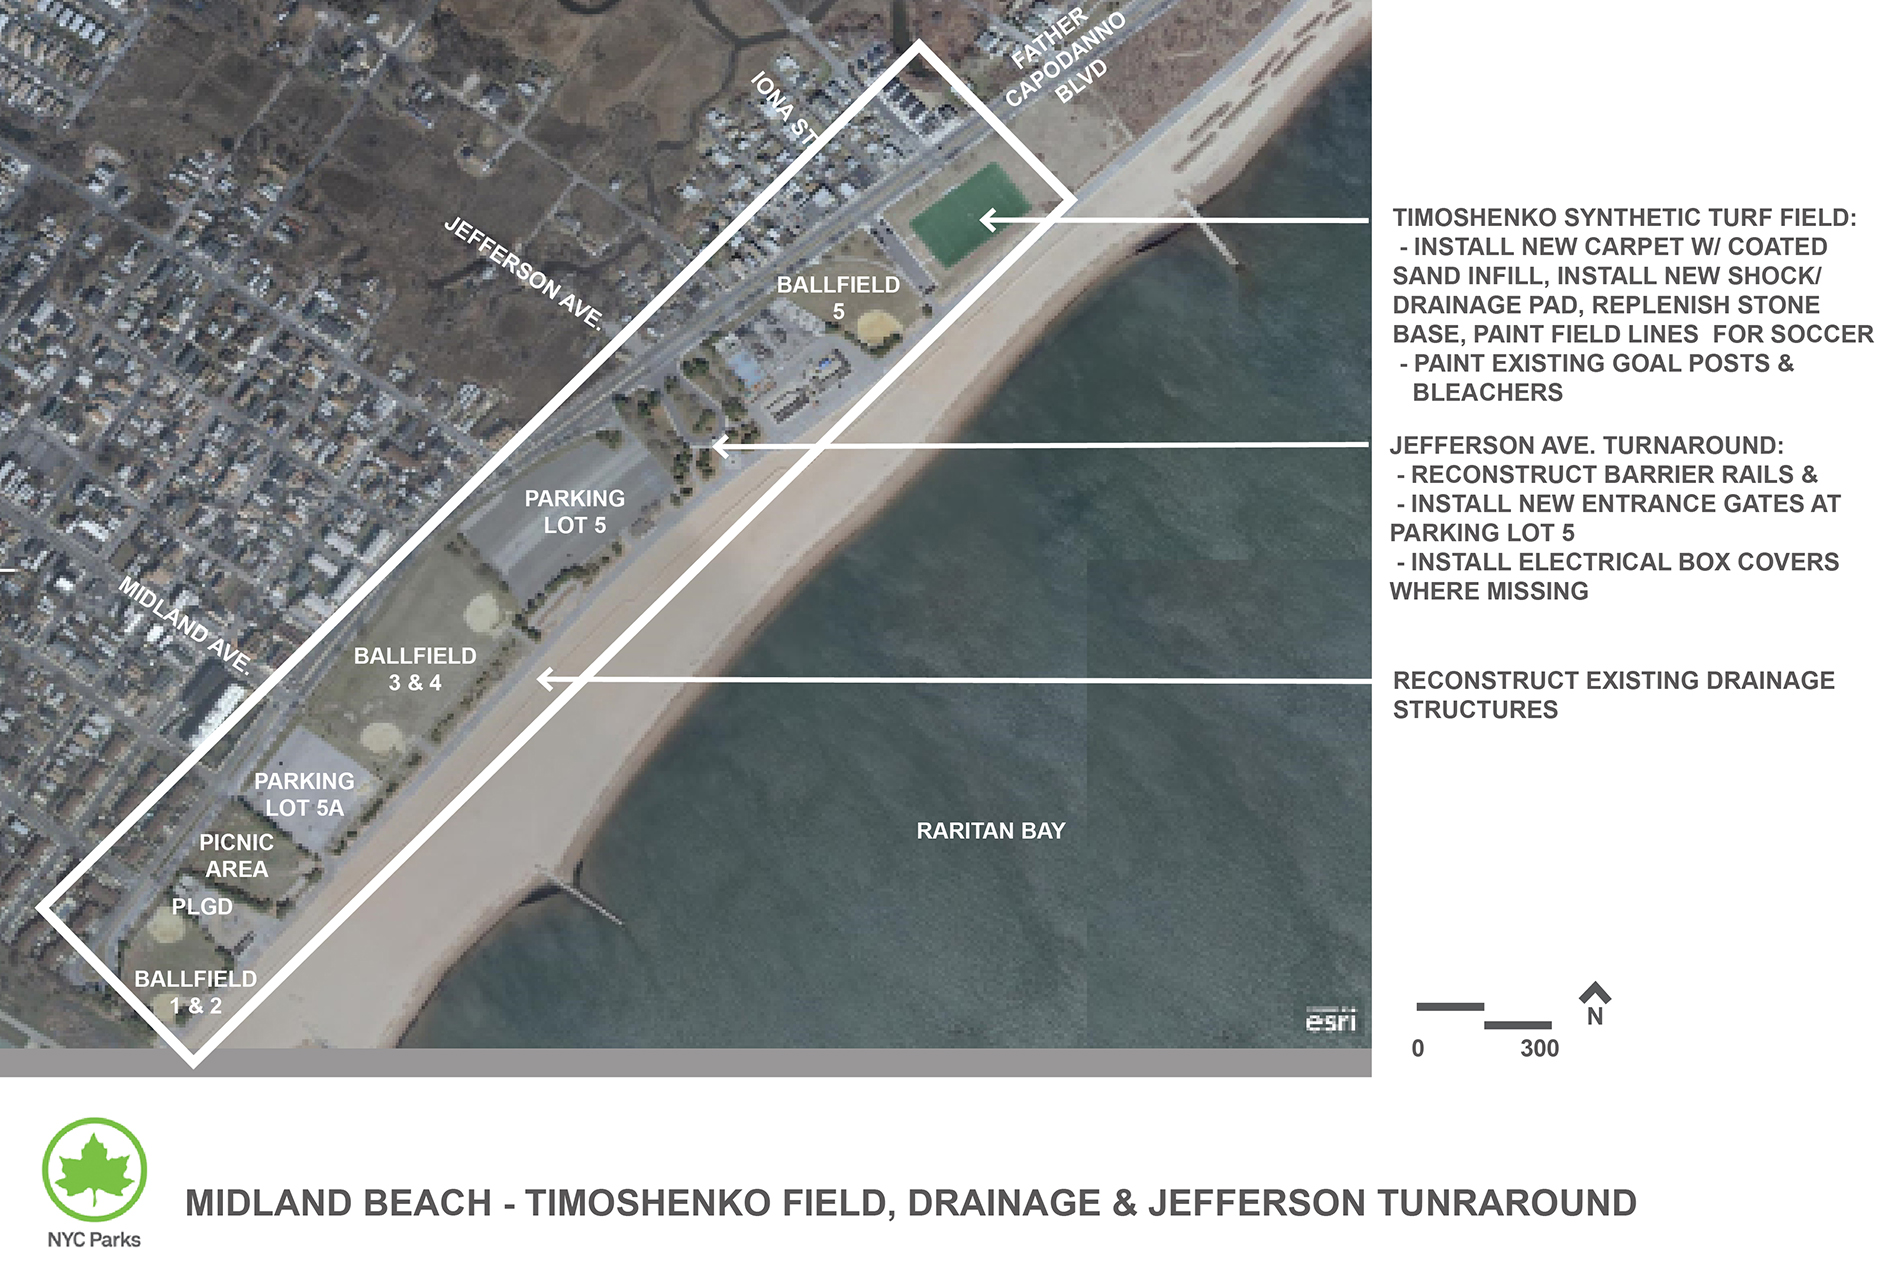 Design of Midland Beach Landscape and Drainage Reconstruction